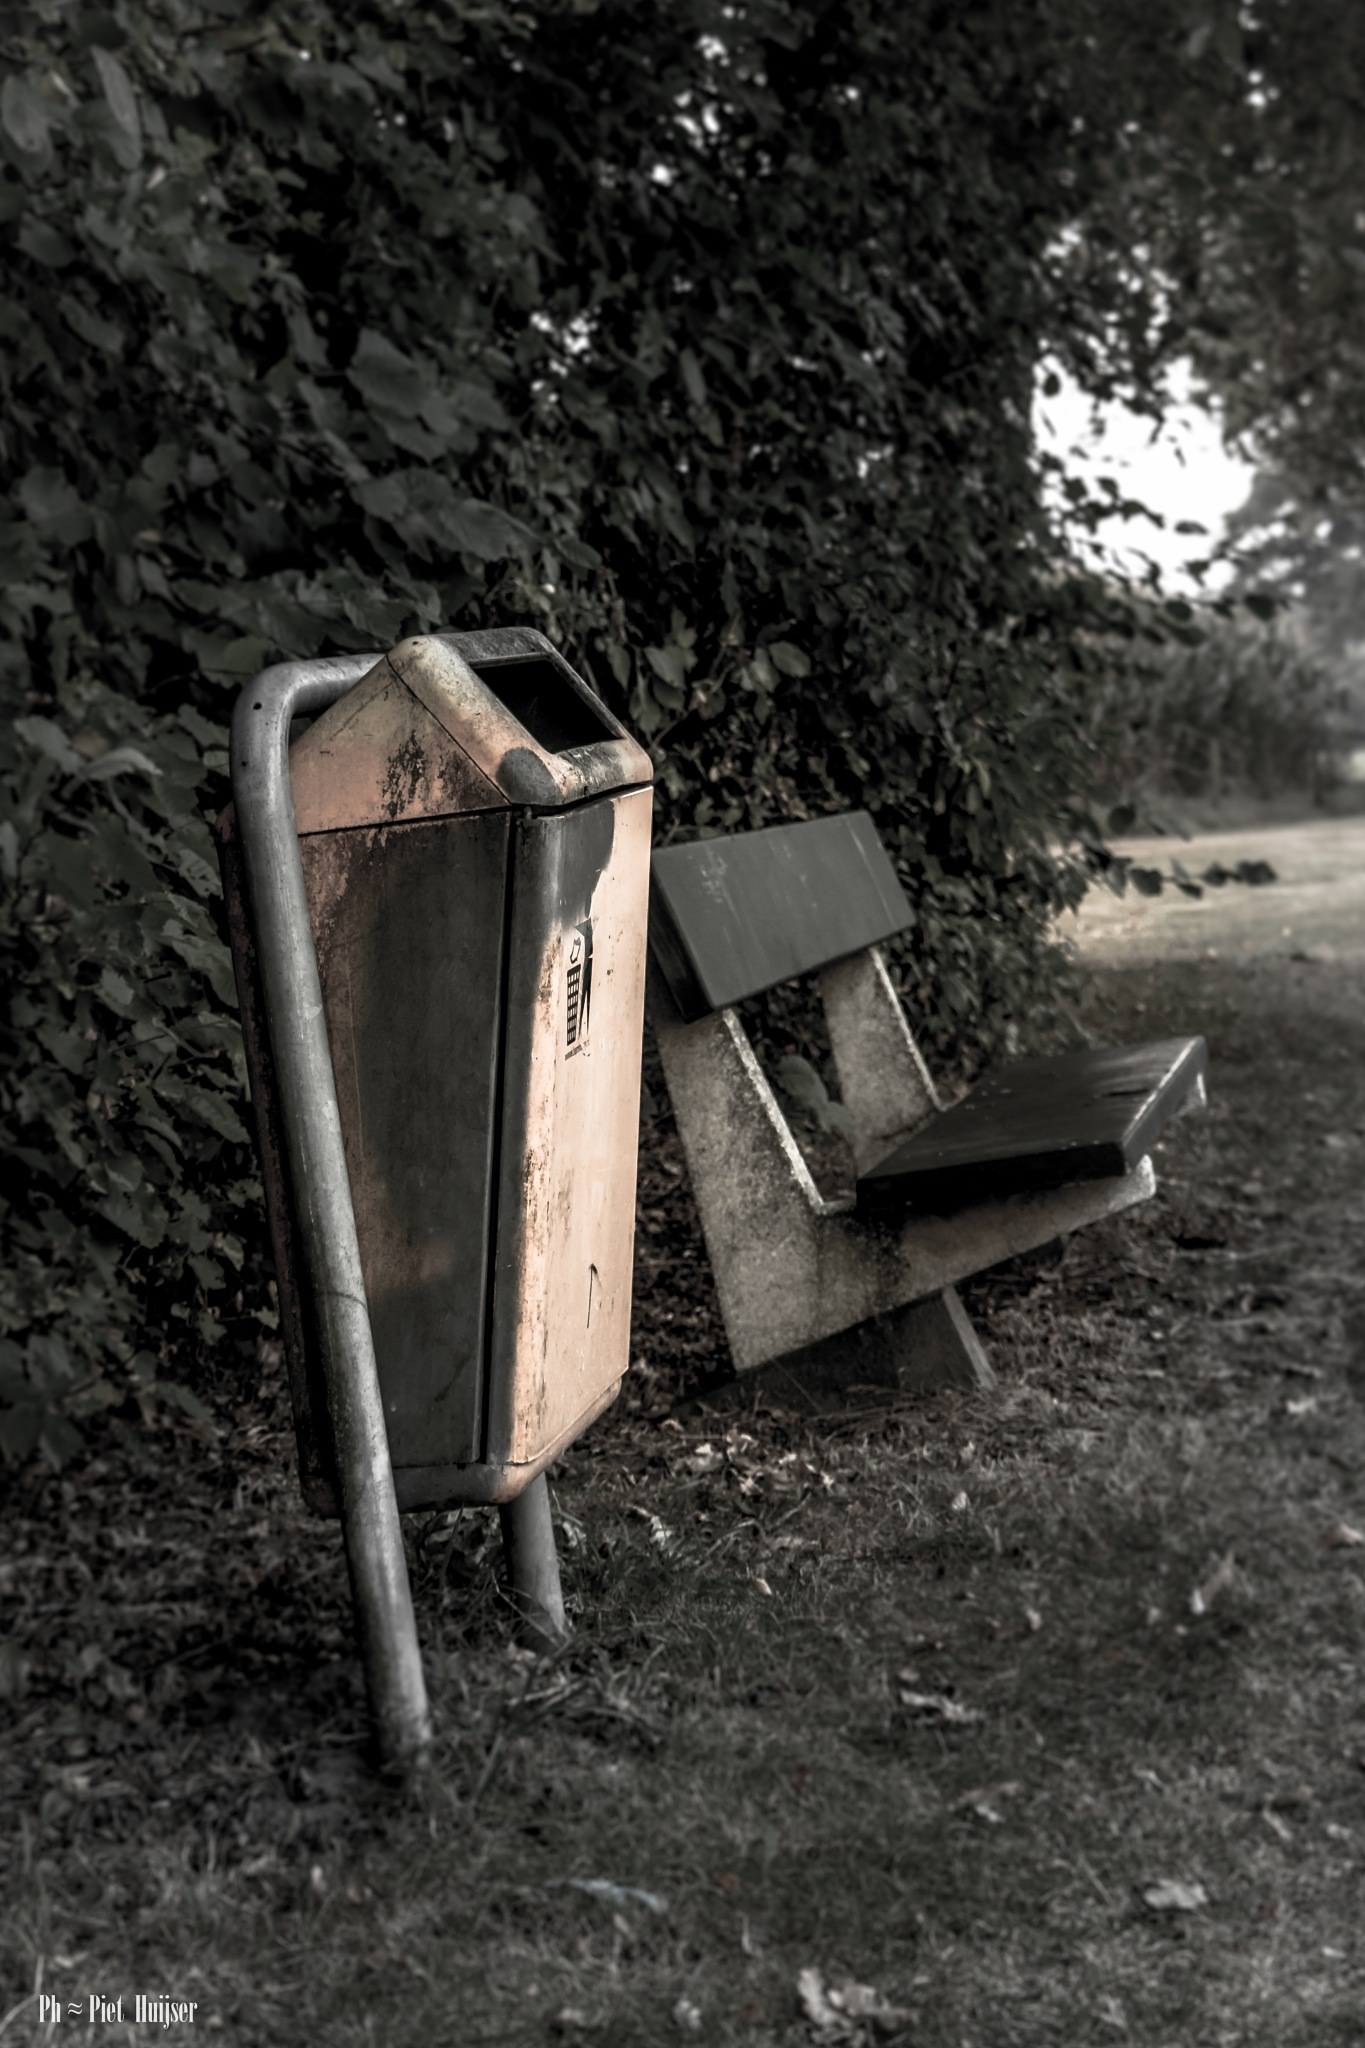 enjoy nature, but clean out your waste on by Piet Huijser